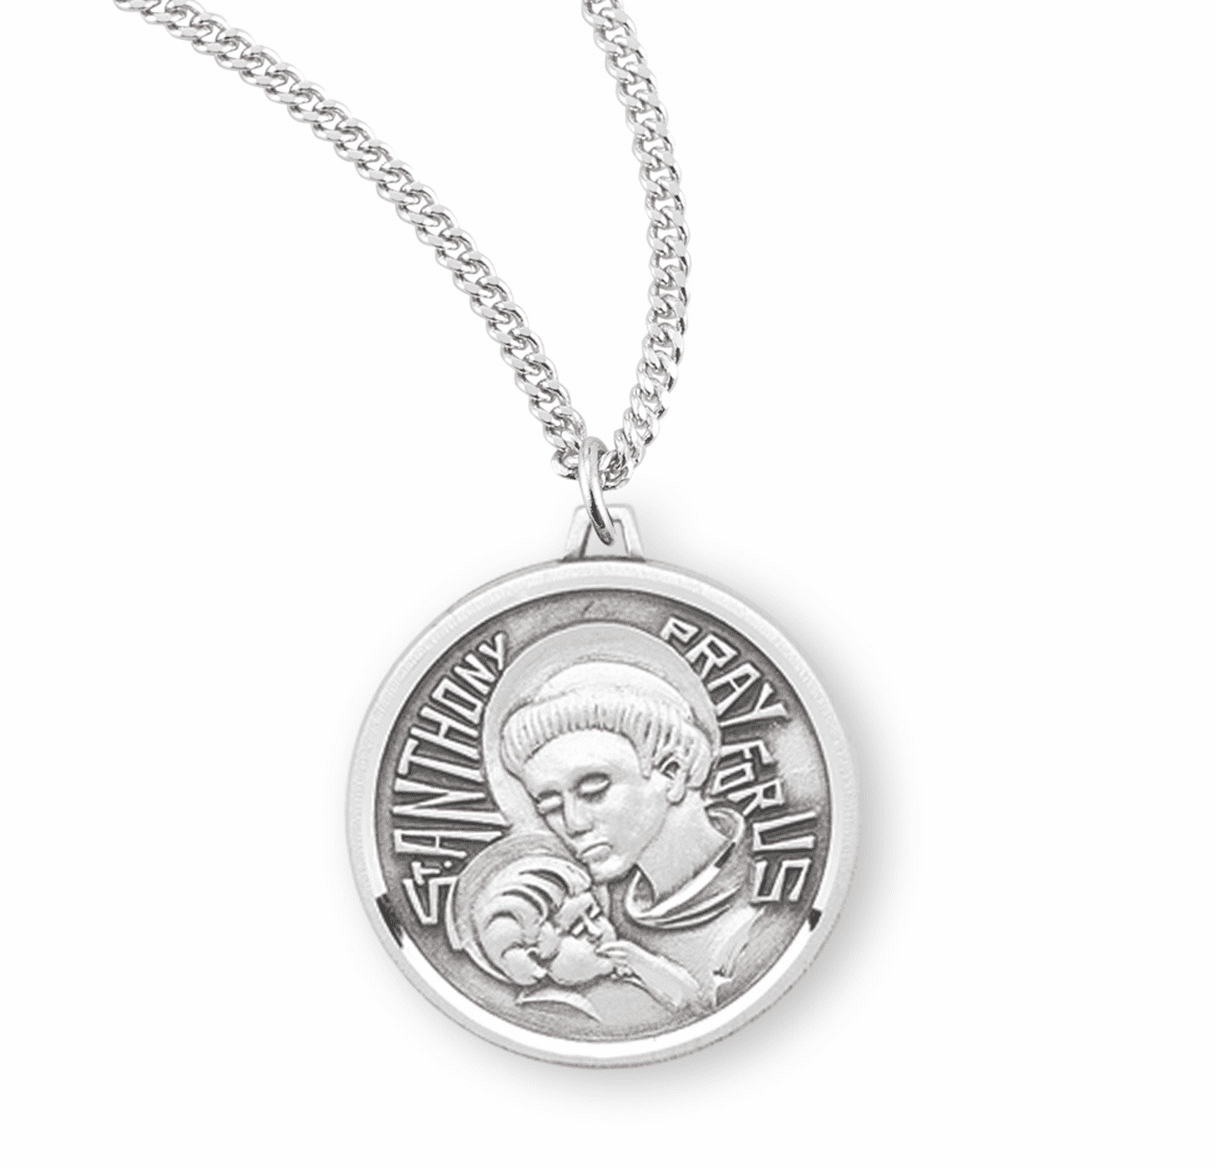 HMH Religious Contemporary Saint Anthony Pendant Necklace w/Chain